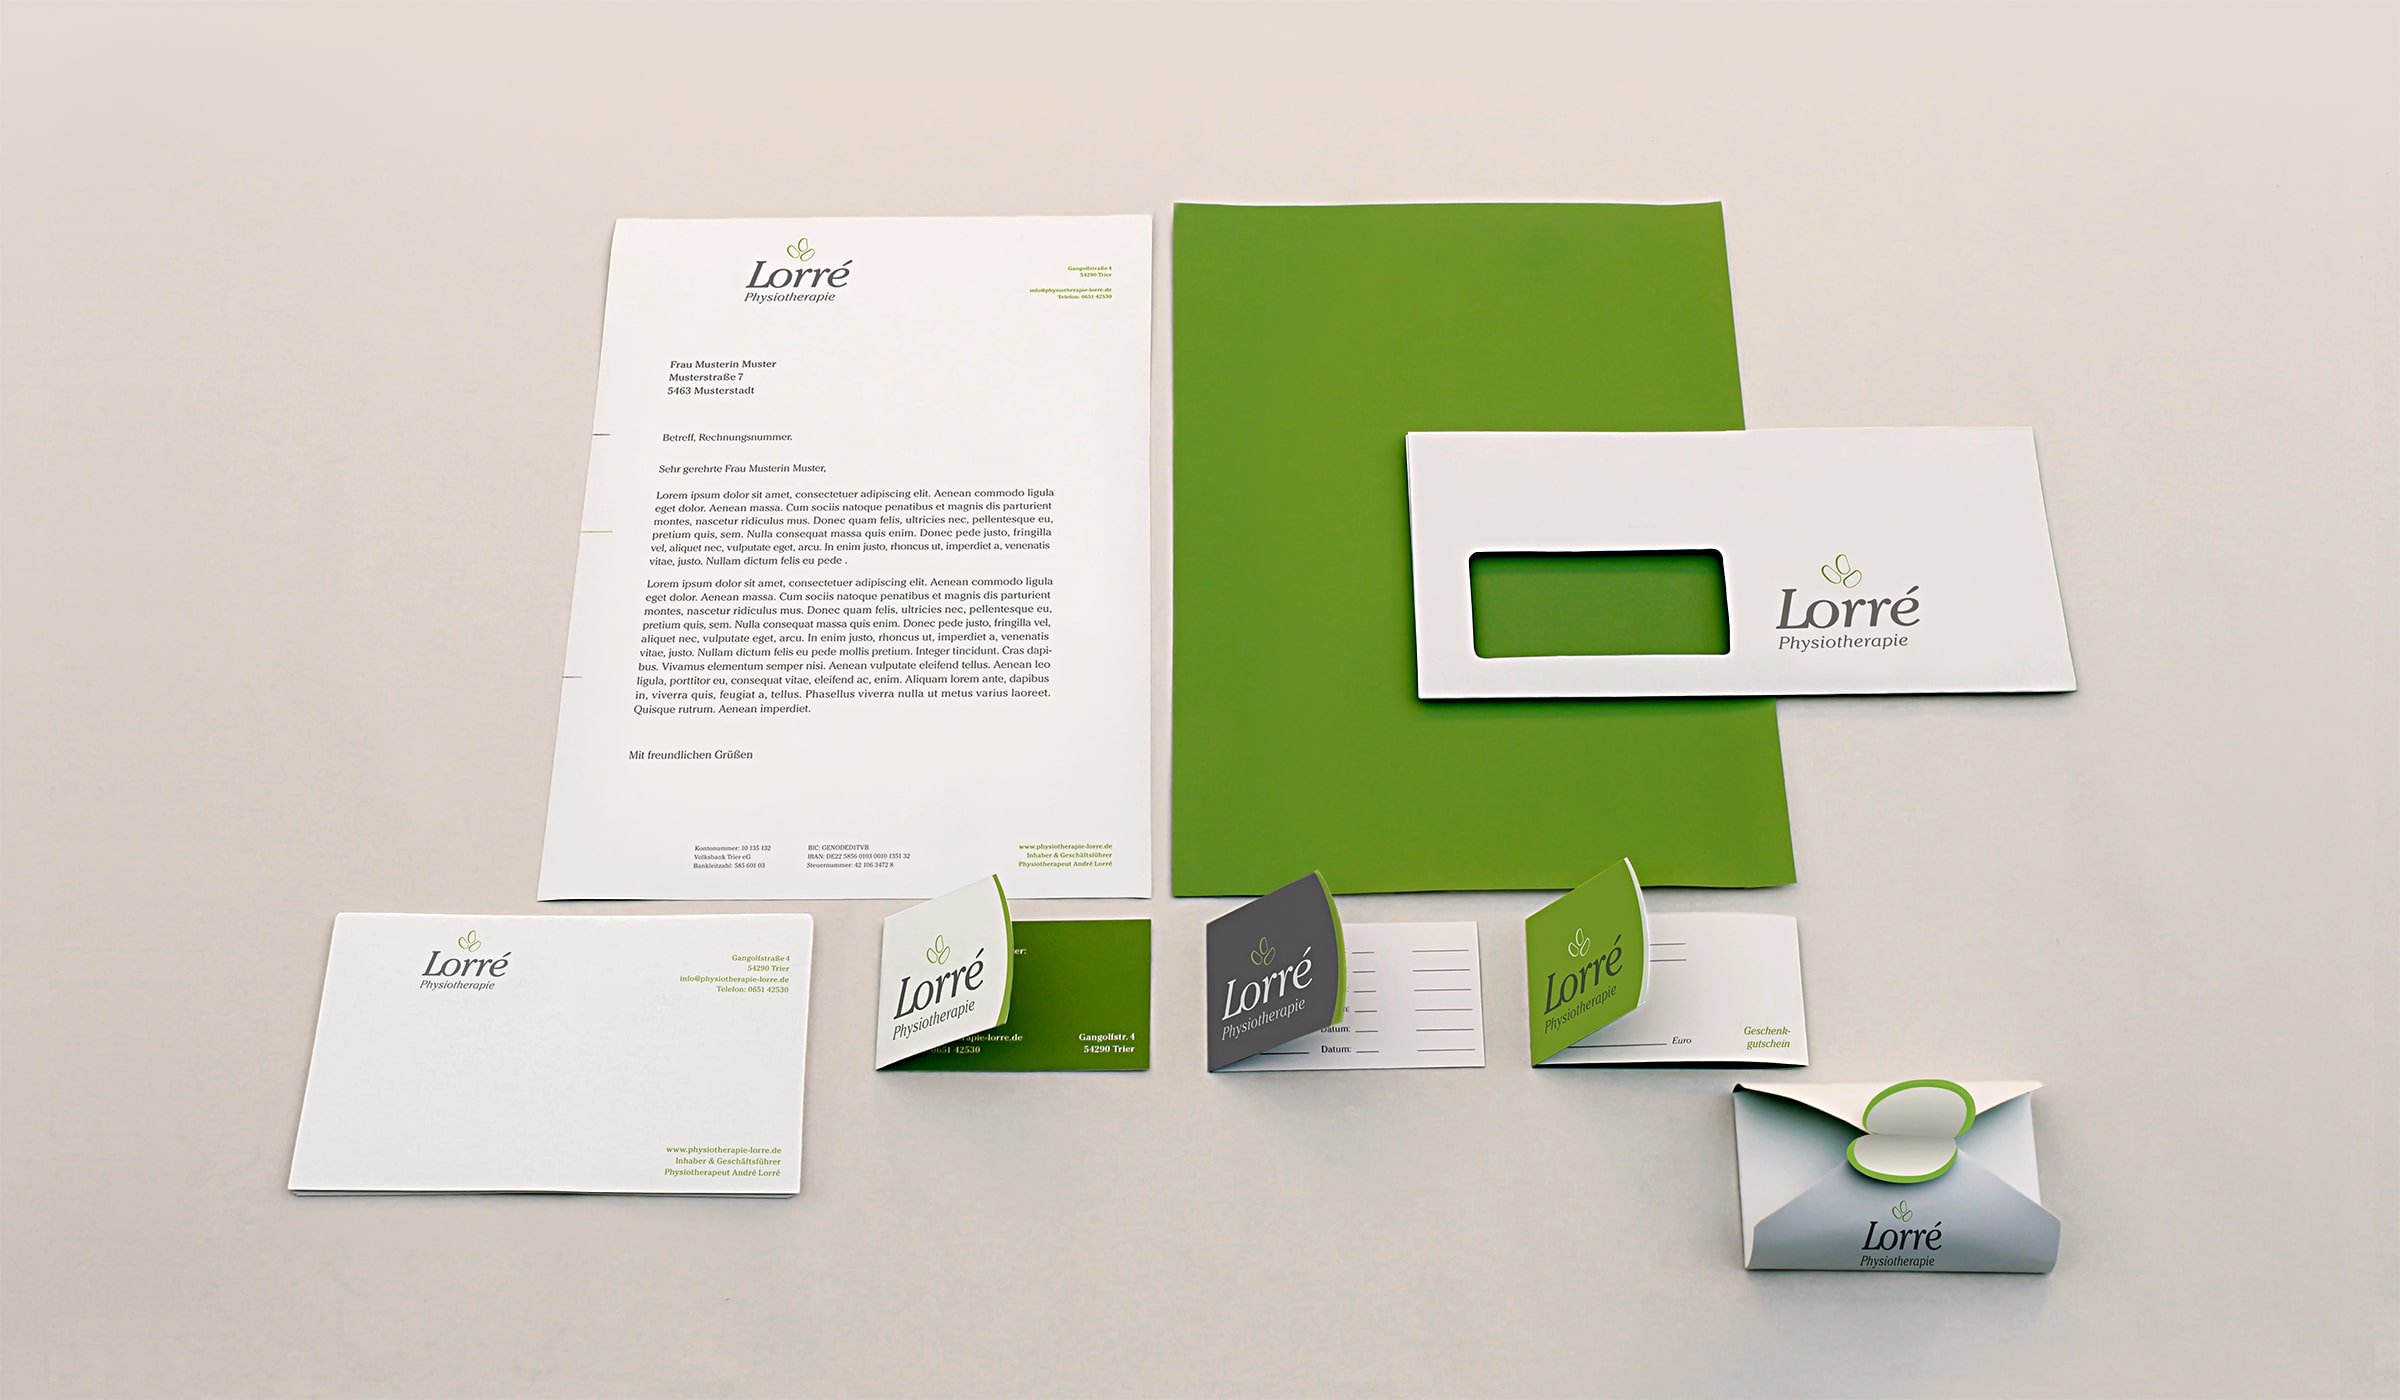 Corporate Identity/ Konzeptarbeit ~ Corporate Design/ Terminkarte/ Physiotherapie Lorré Trier/ Branding/ Brand Design/ Logo/ KERSTIN MICHELS – DESIGN/ Designagentur/ Werbeagentur/Grafikdesign/ Kommunikationsdesign/ Hermeskeil/ Hochwald/ Rheinland-Pfalz/ Werbung/ Design